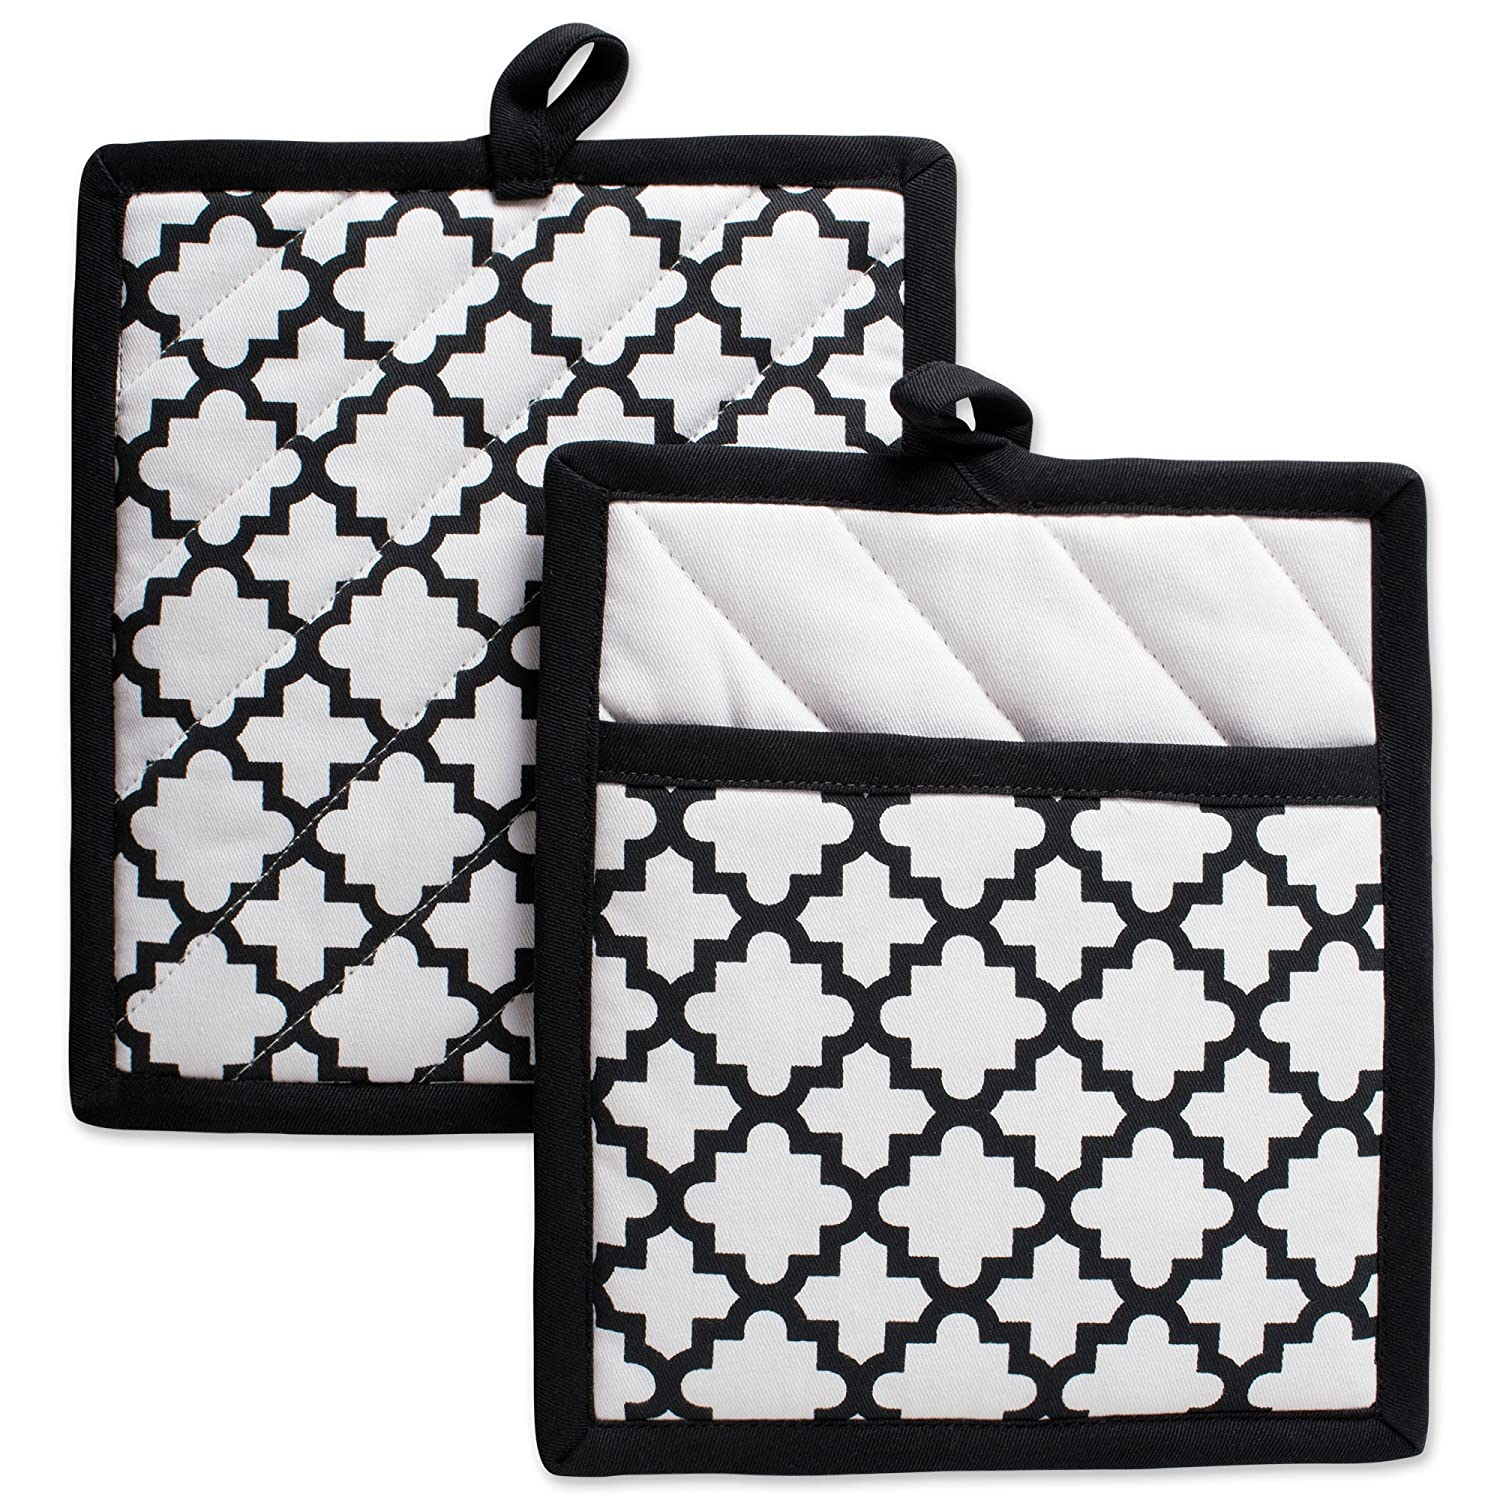 """DII Cotton Lattice Pot Holders, 9 x 8"""" Set of 2, Machine Washable and Heat Resistant Hot Pad for Everyday Kitchen Cooking & Baking-White"""